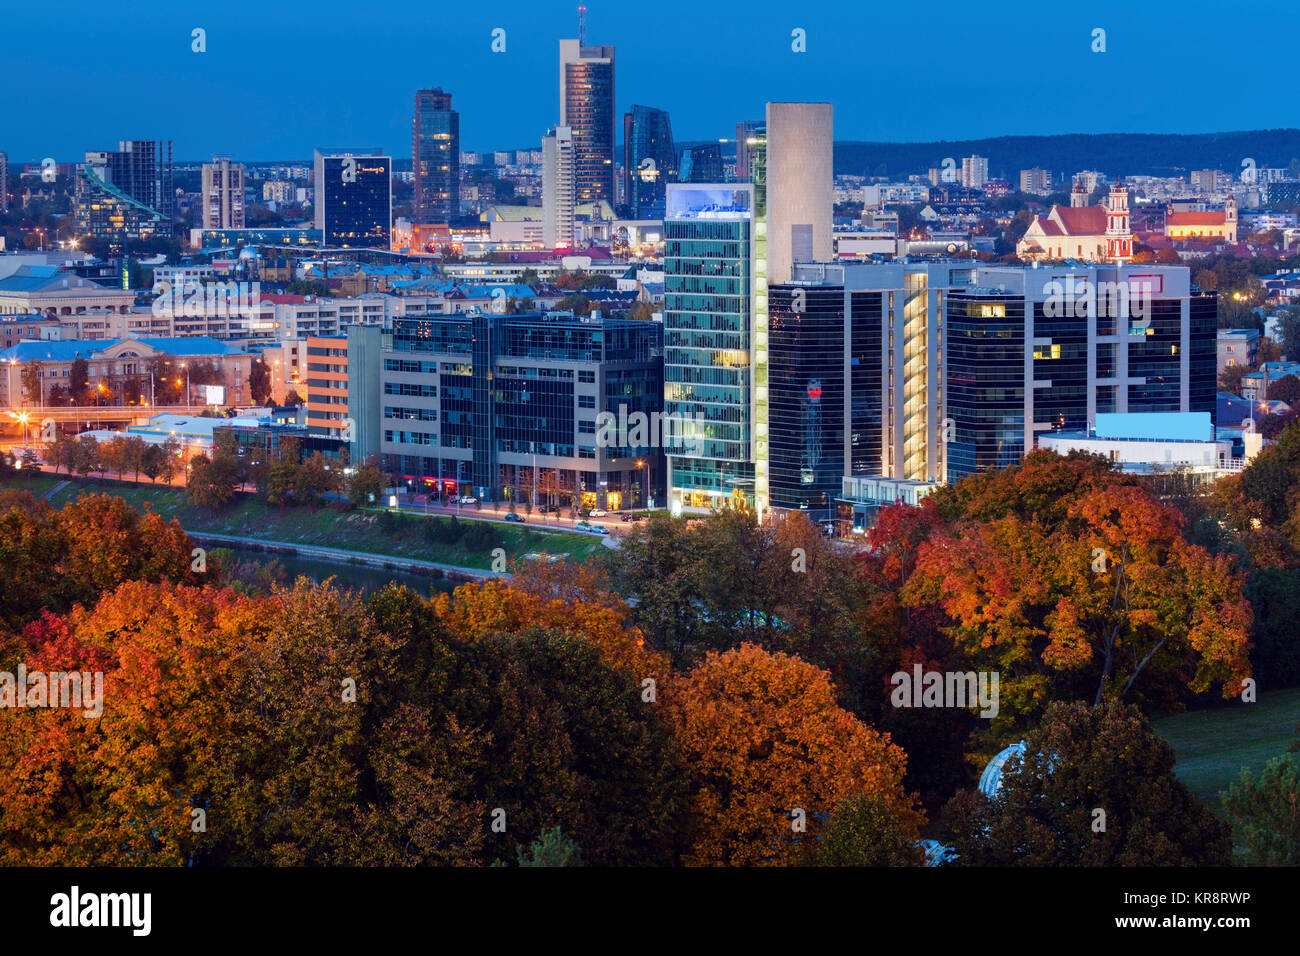 Lithuania, Vilnius, Cityscape at night - Stock Image